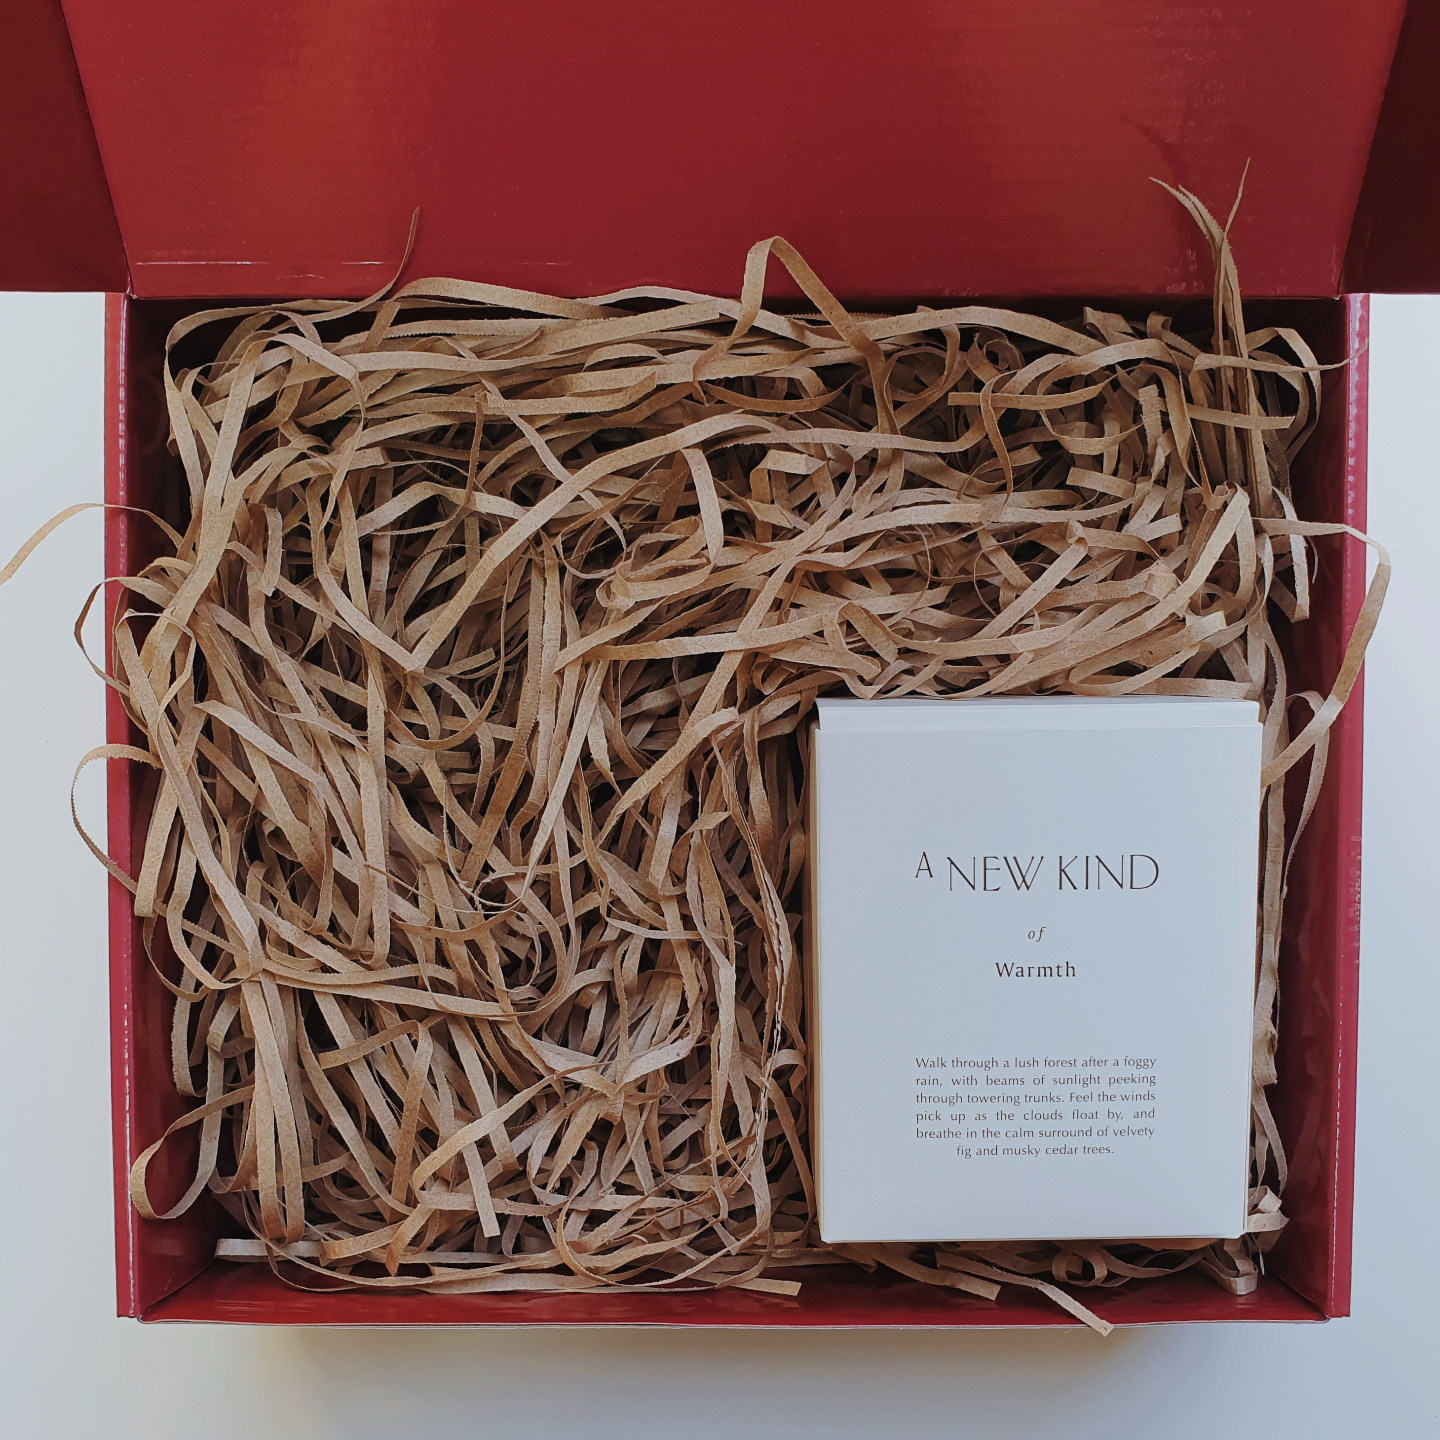 Red gift box filled with brown shredded paper. On the bottom right is a white box with the words A new kind of warmth printed on it.